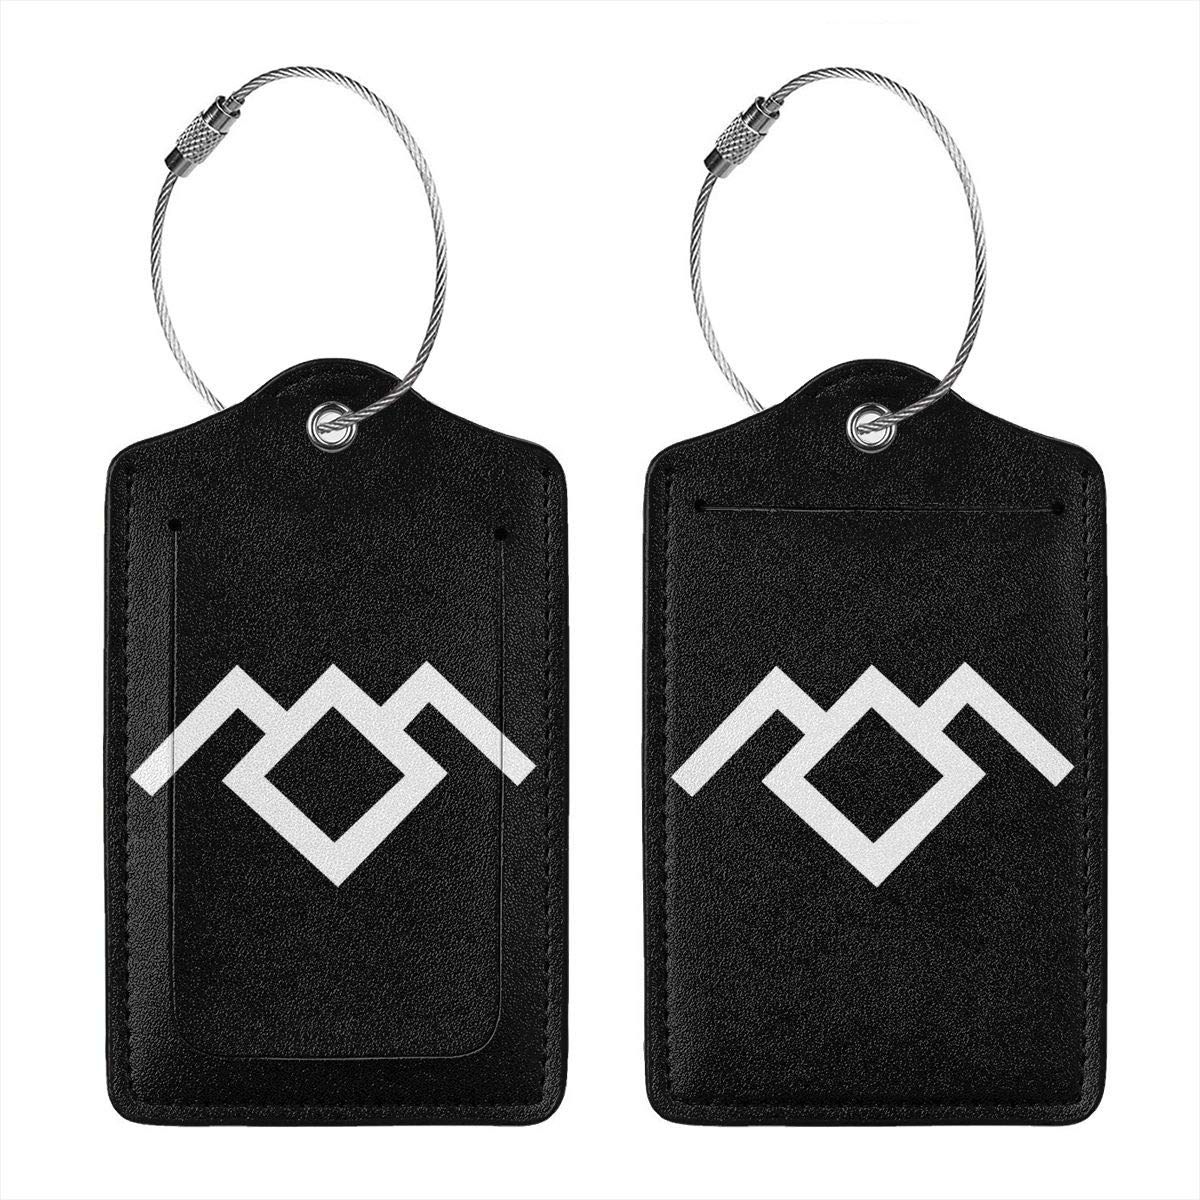 Twin Peaks Owl Cave Symbol Leather Luggage Tag Travel ID Label For Baggage Suitcase